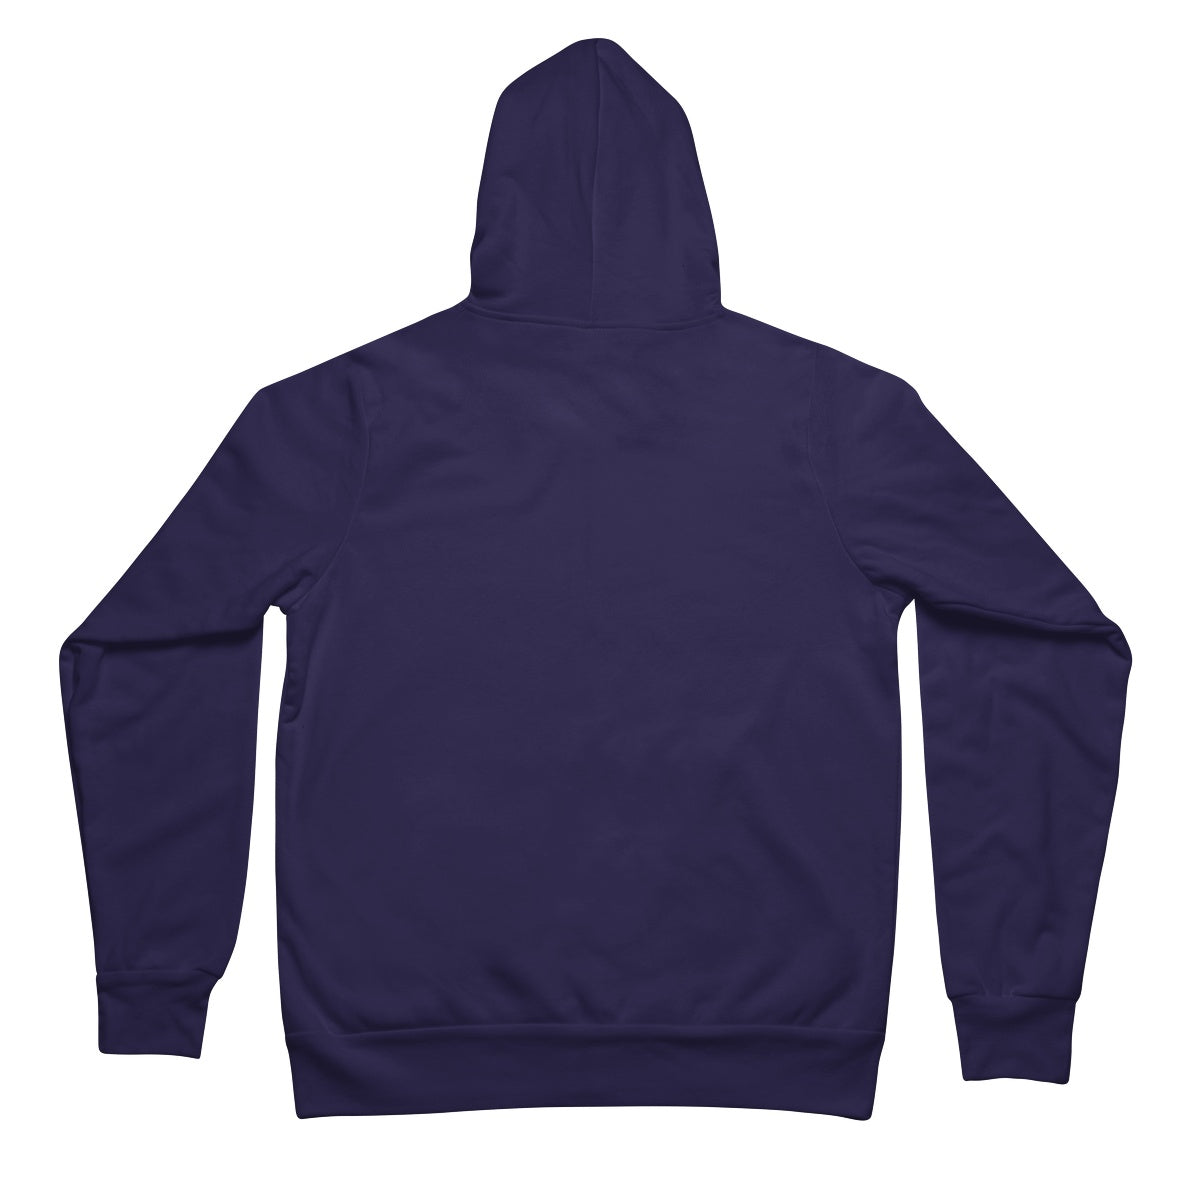 The Cafe Unisex Full Zip Hoodie